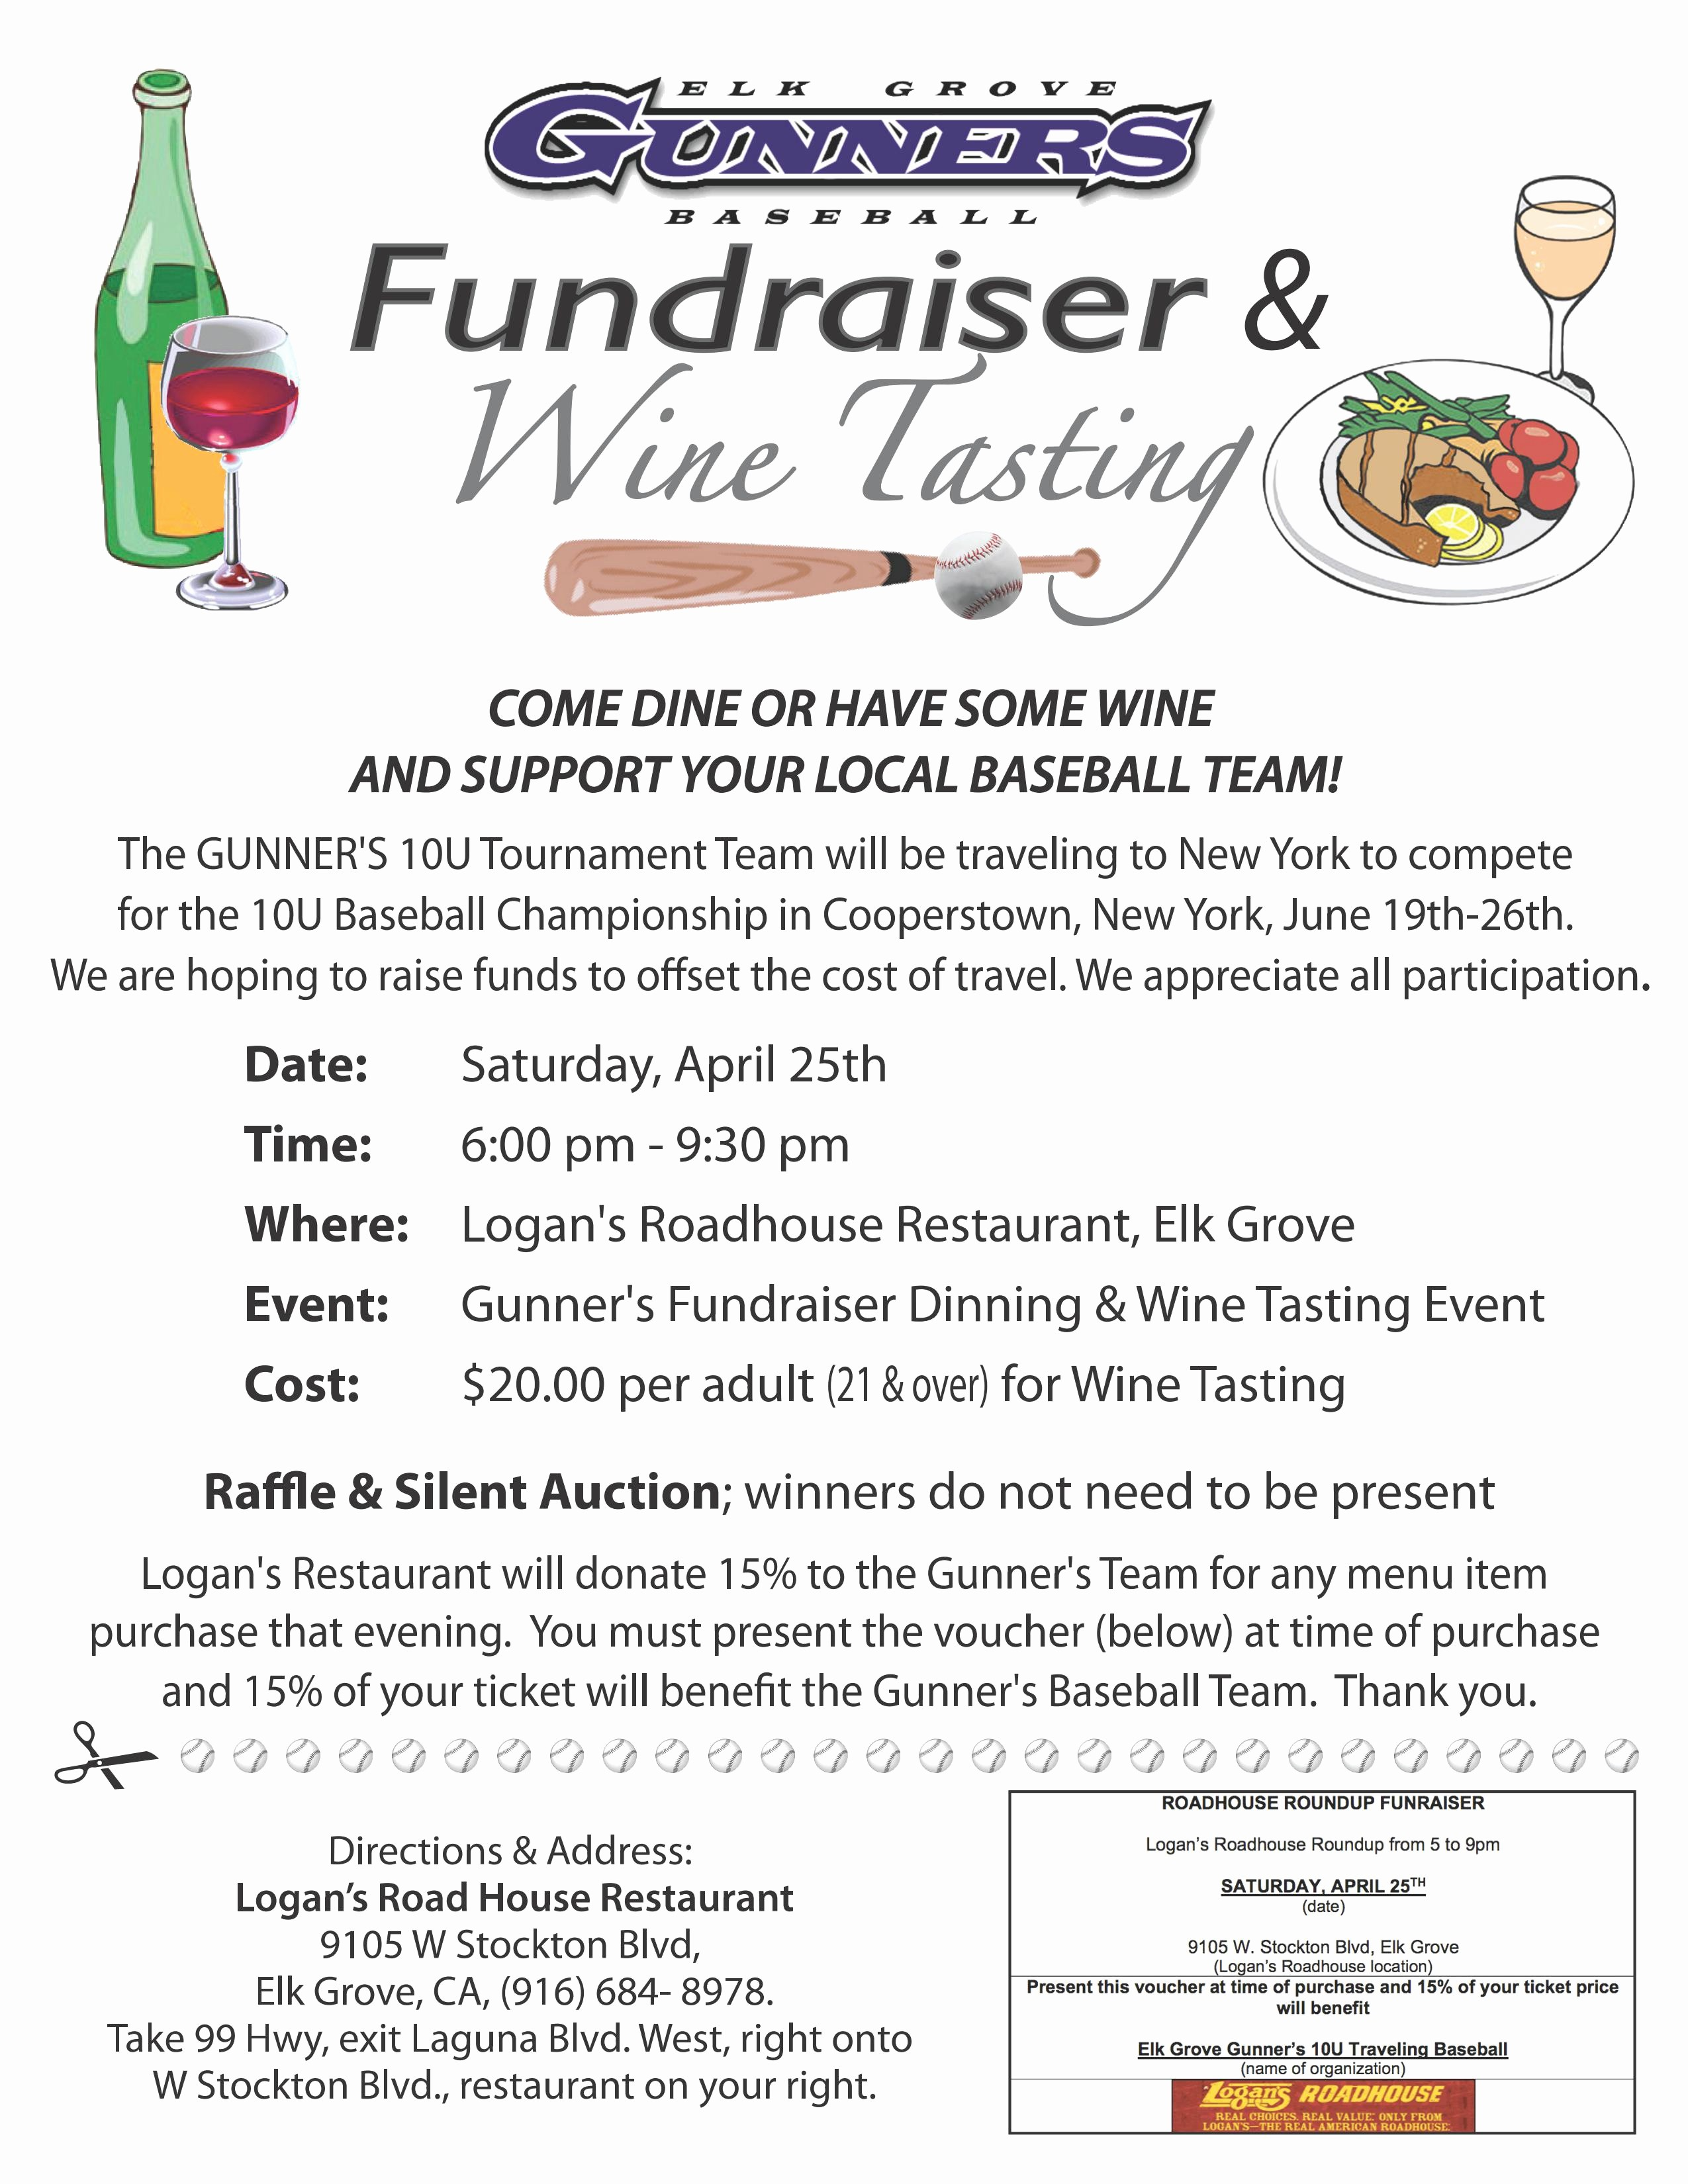 Flyers for Fundraisers Template Free New Baseball Fundraiser Flyer Template Yourweek Eca25e